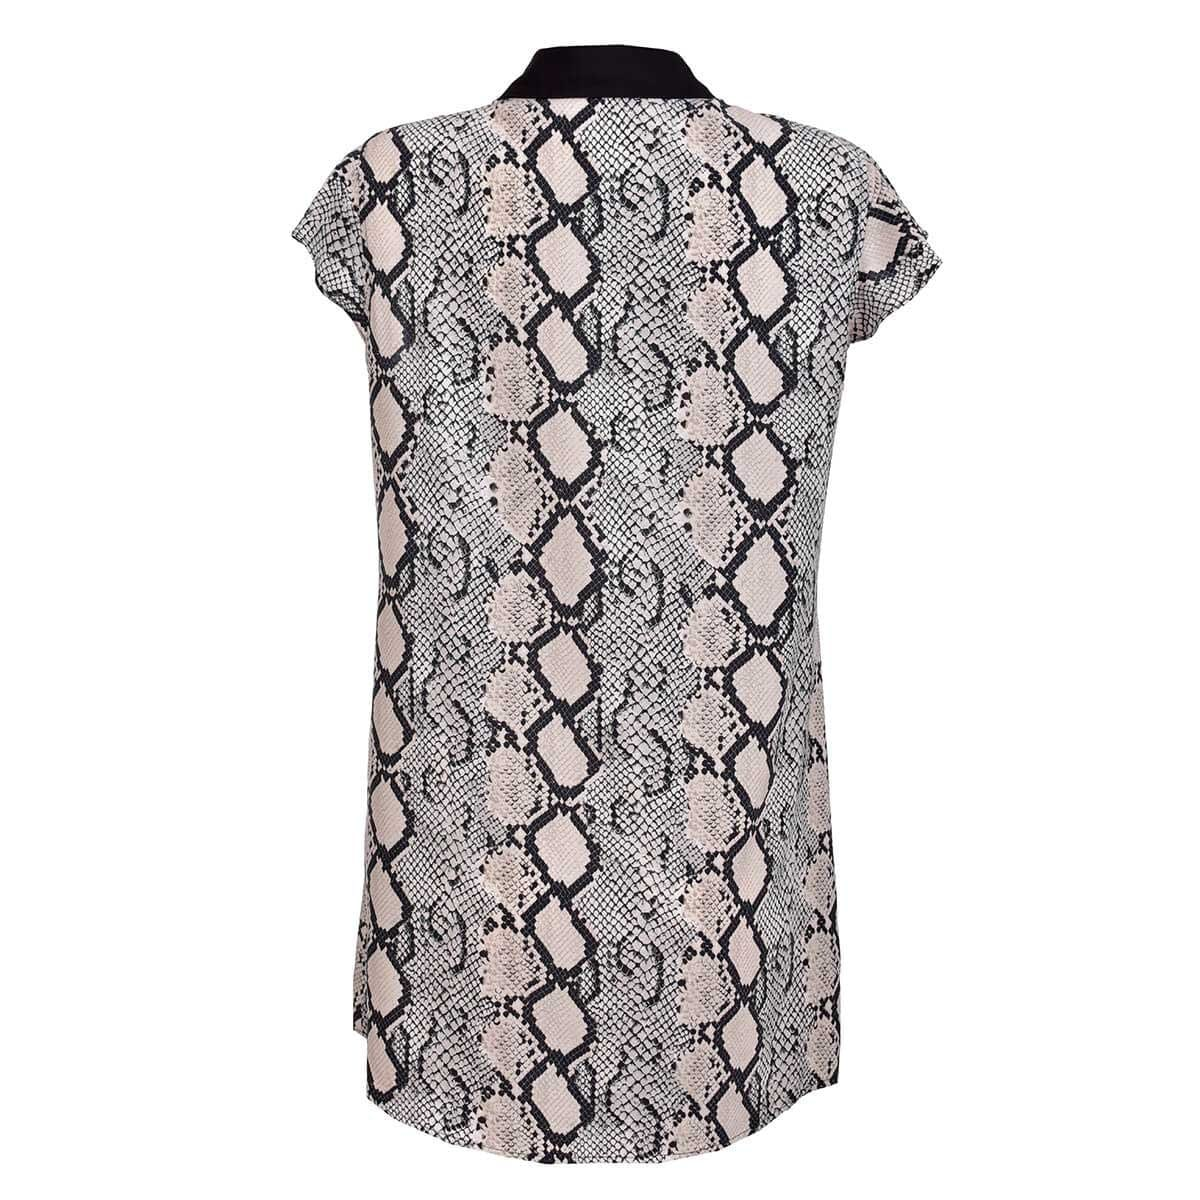 Blusa con Cinturón Estampado de Emily Philosophy Jr Woman